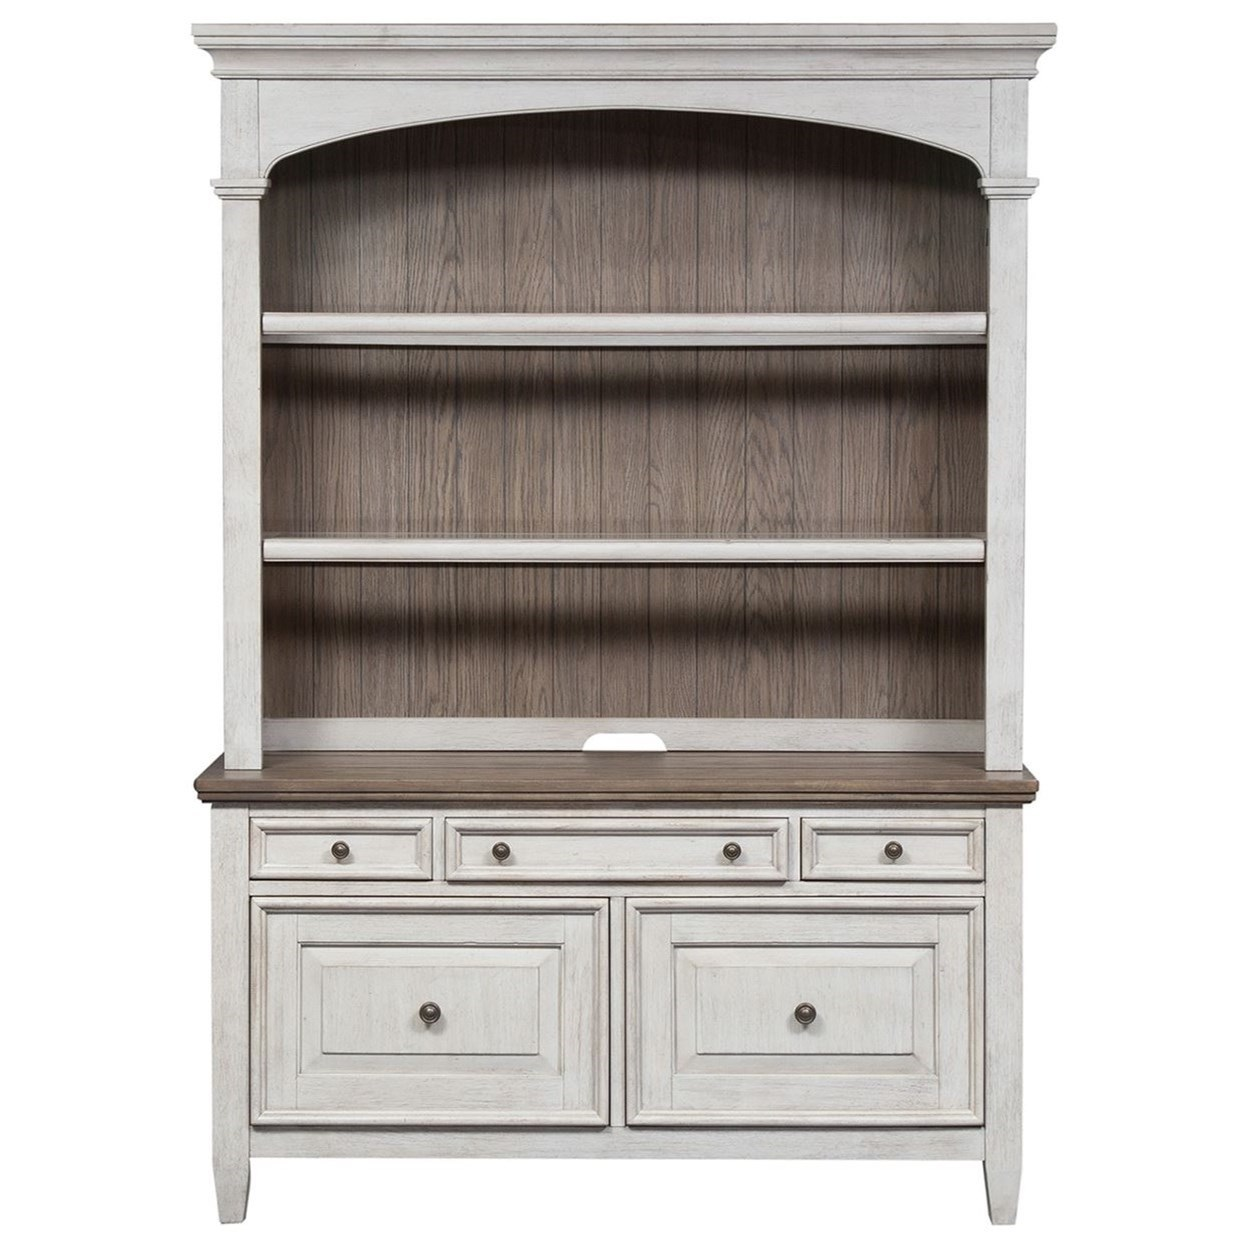 Heartland Credenza & Hutch by Liberty Furniture at Northeast Factory Direct